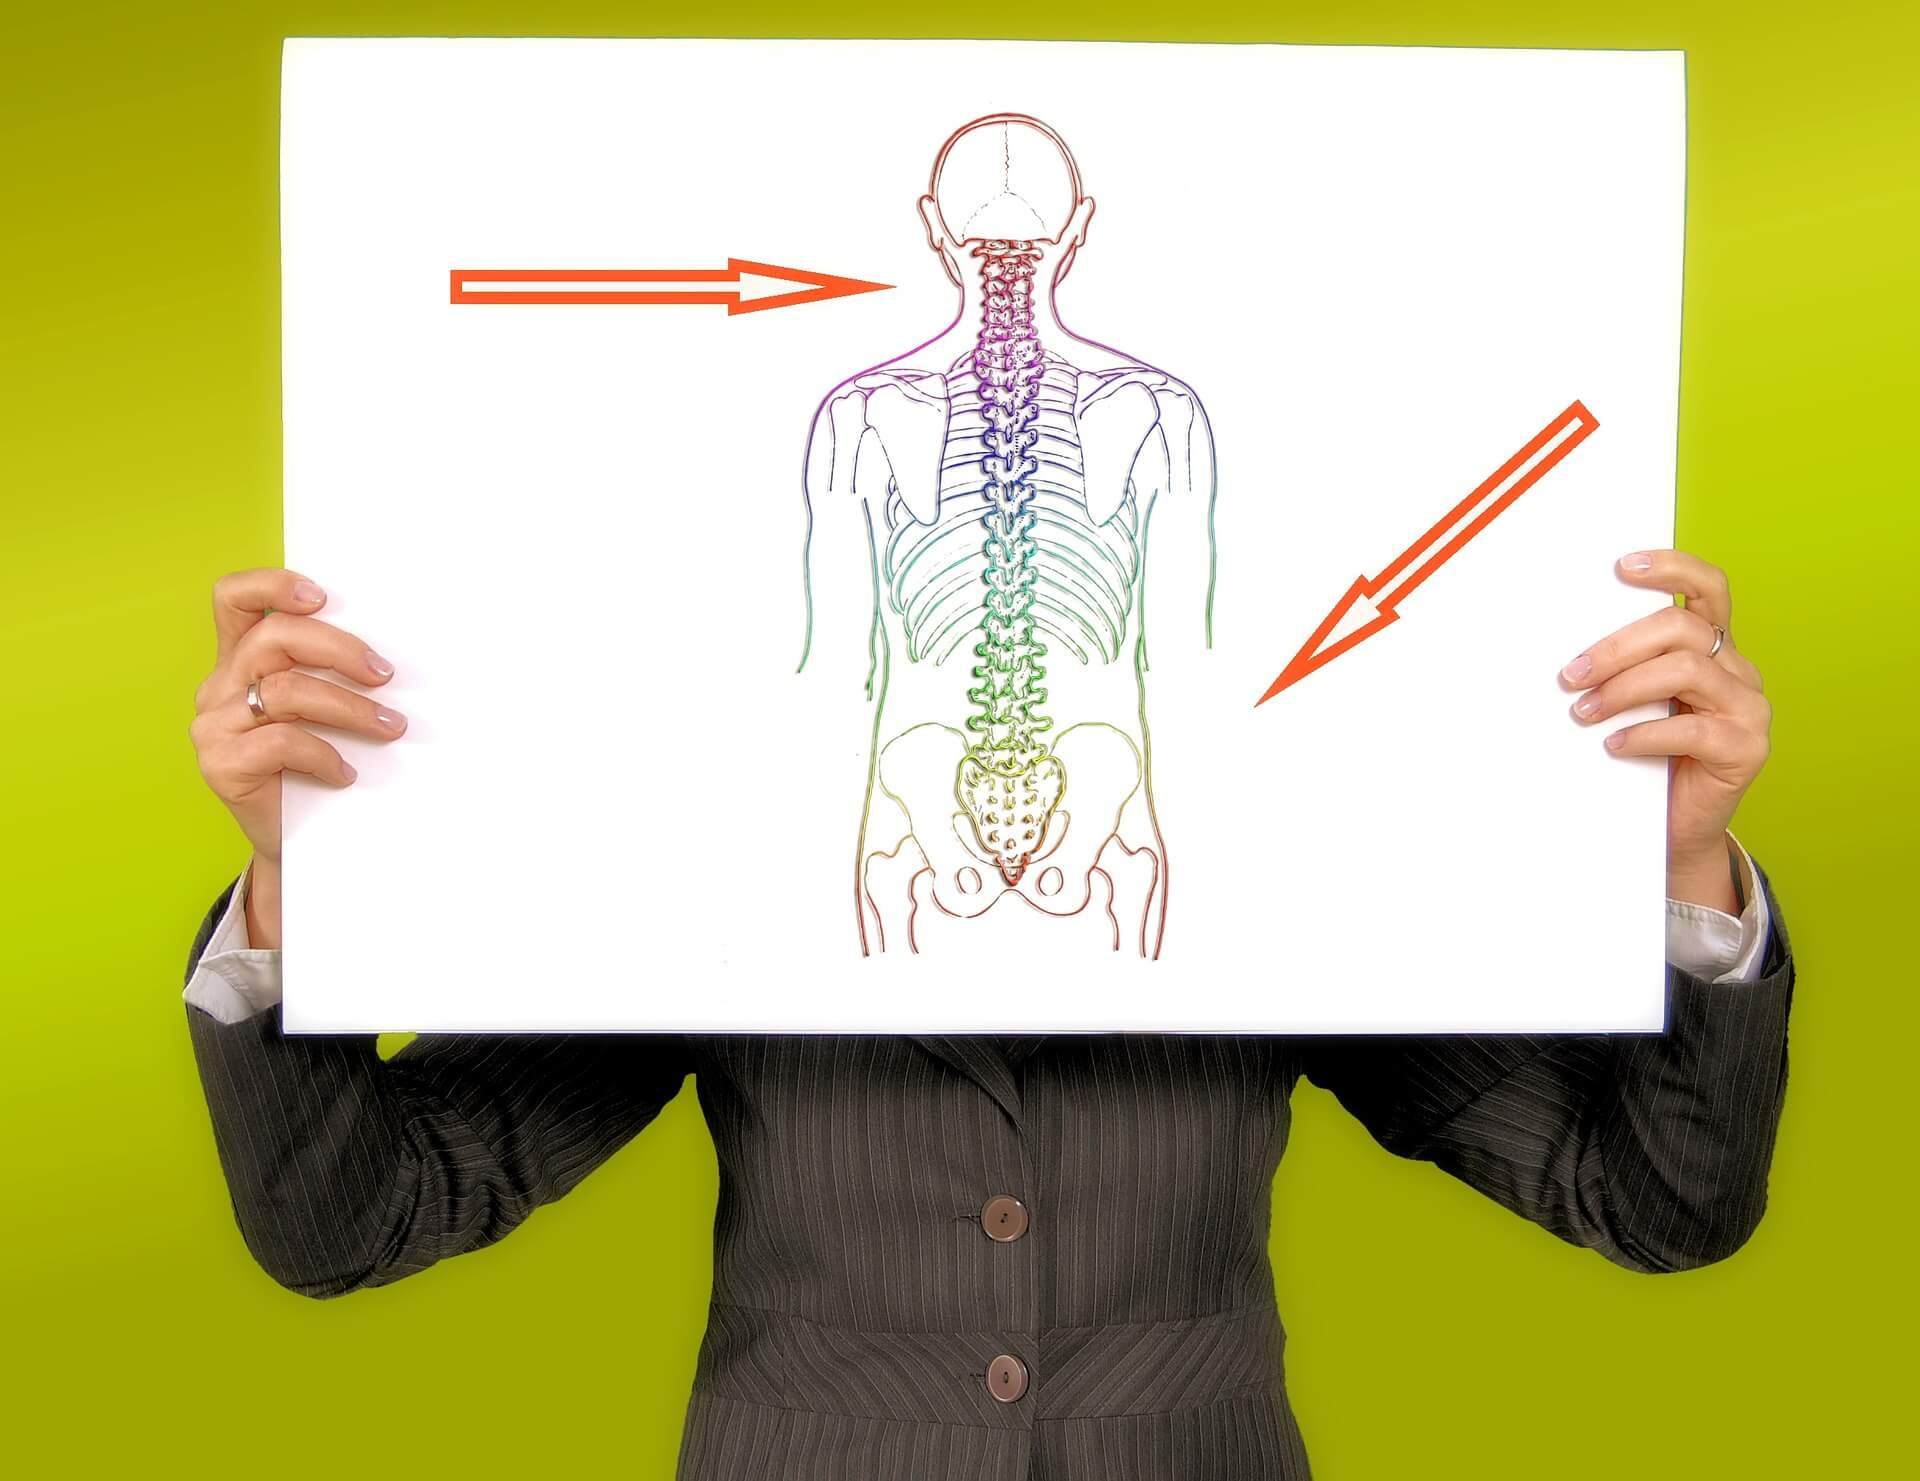 Pain and physiotherapy - The Vector Health experience